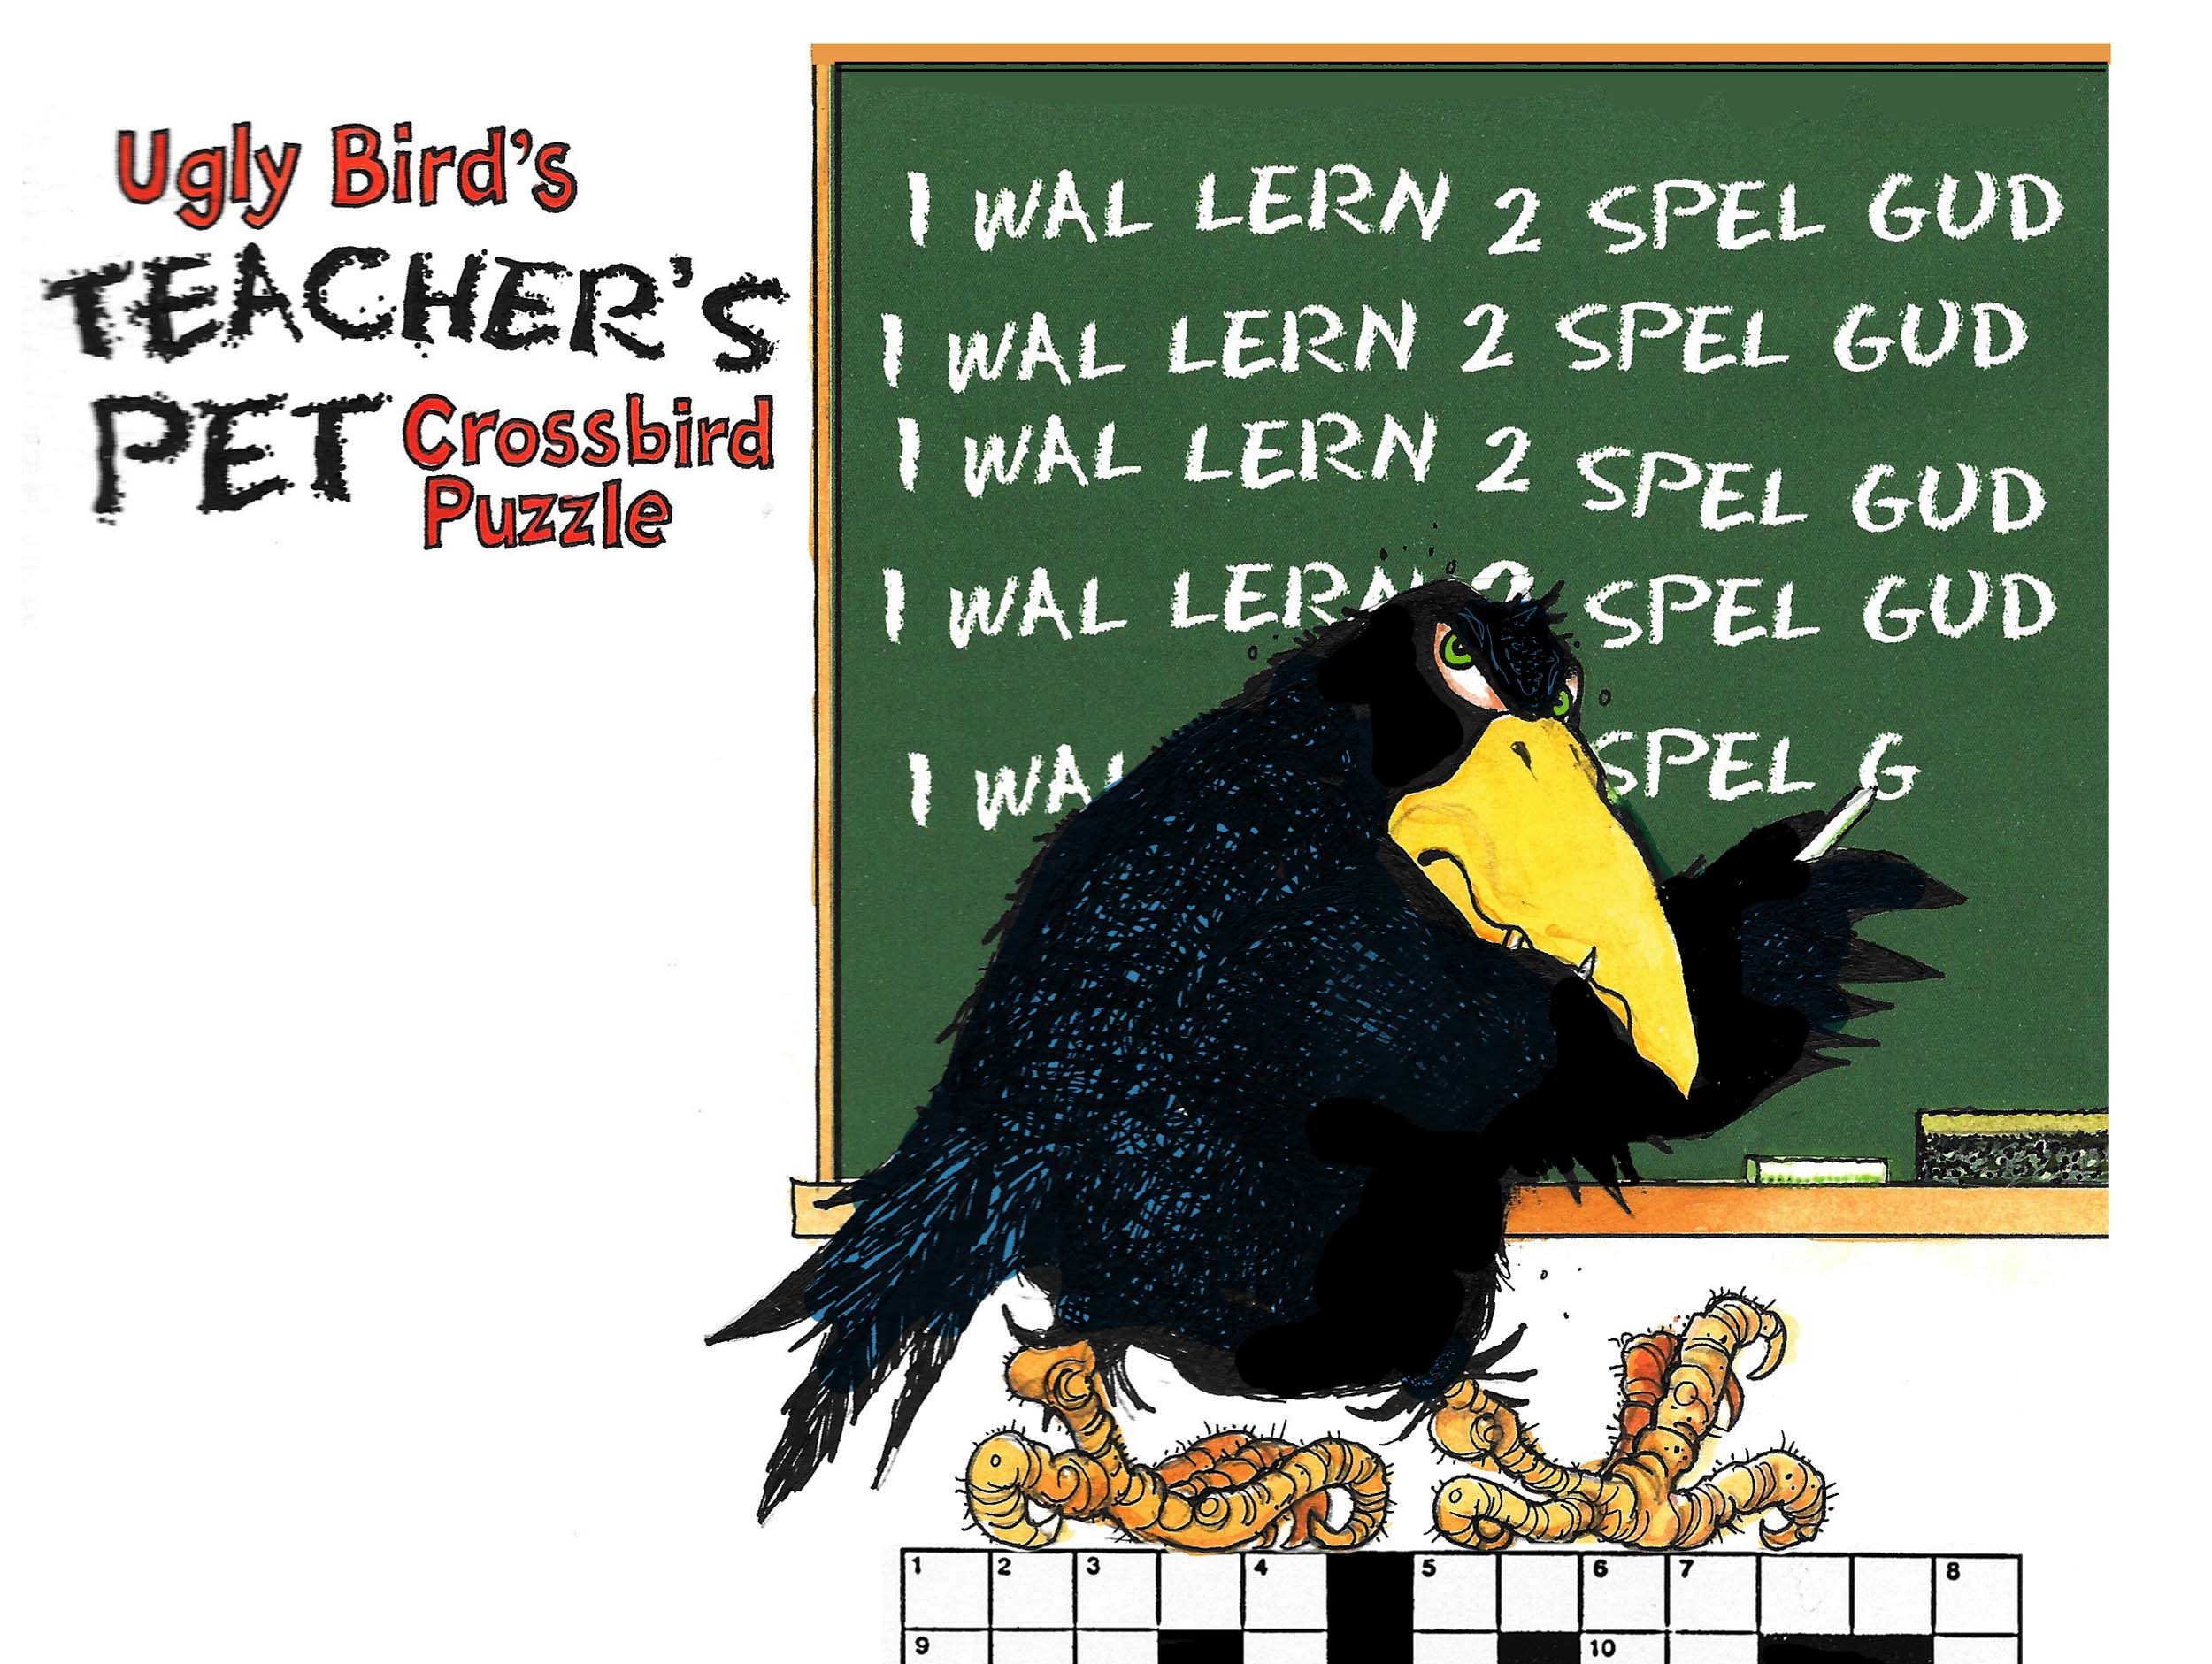 Ugly Bird's Teacher's Pet Crossbird Puzzle